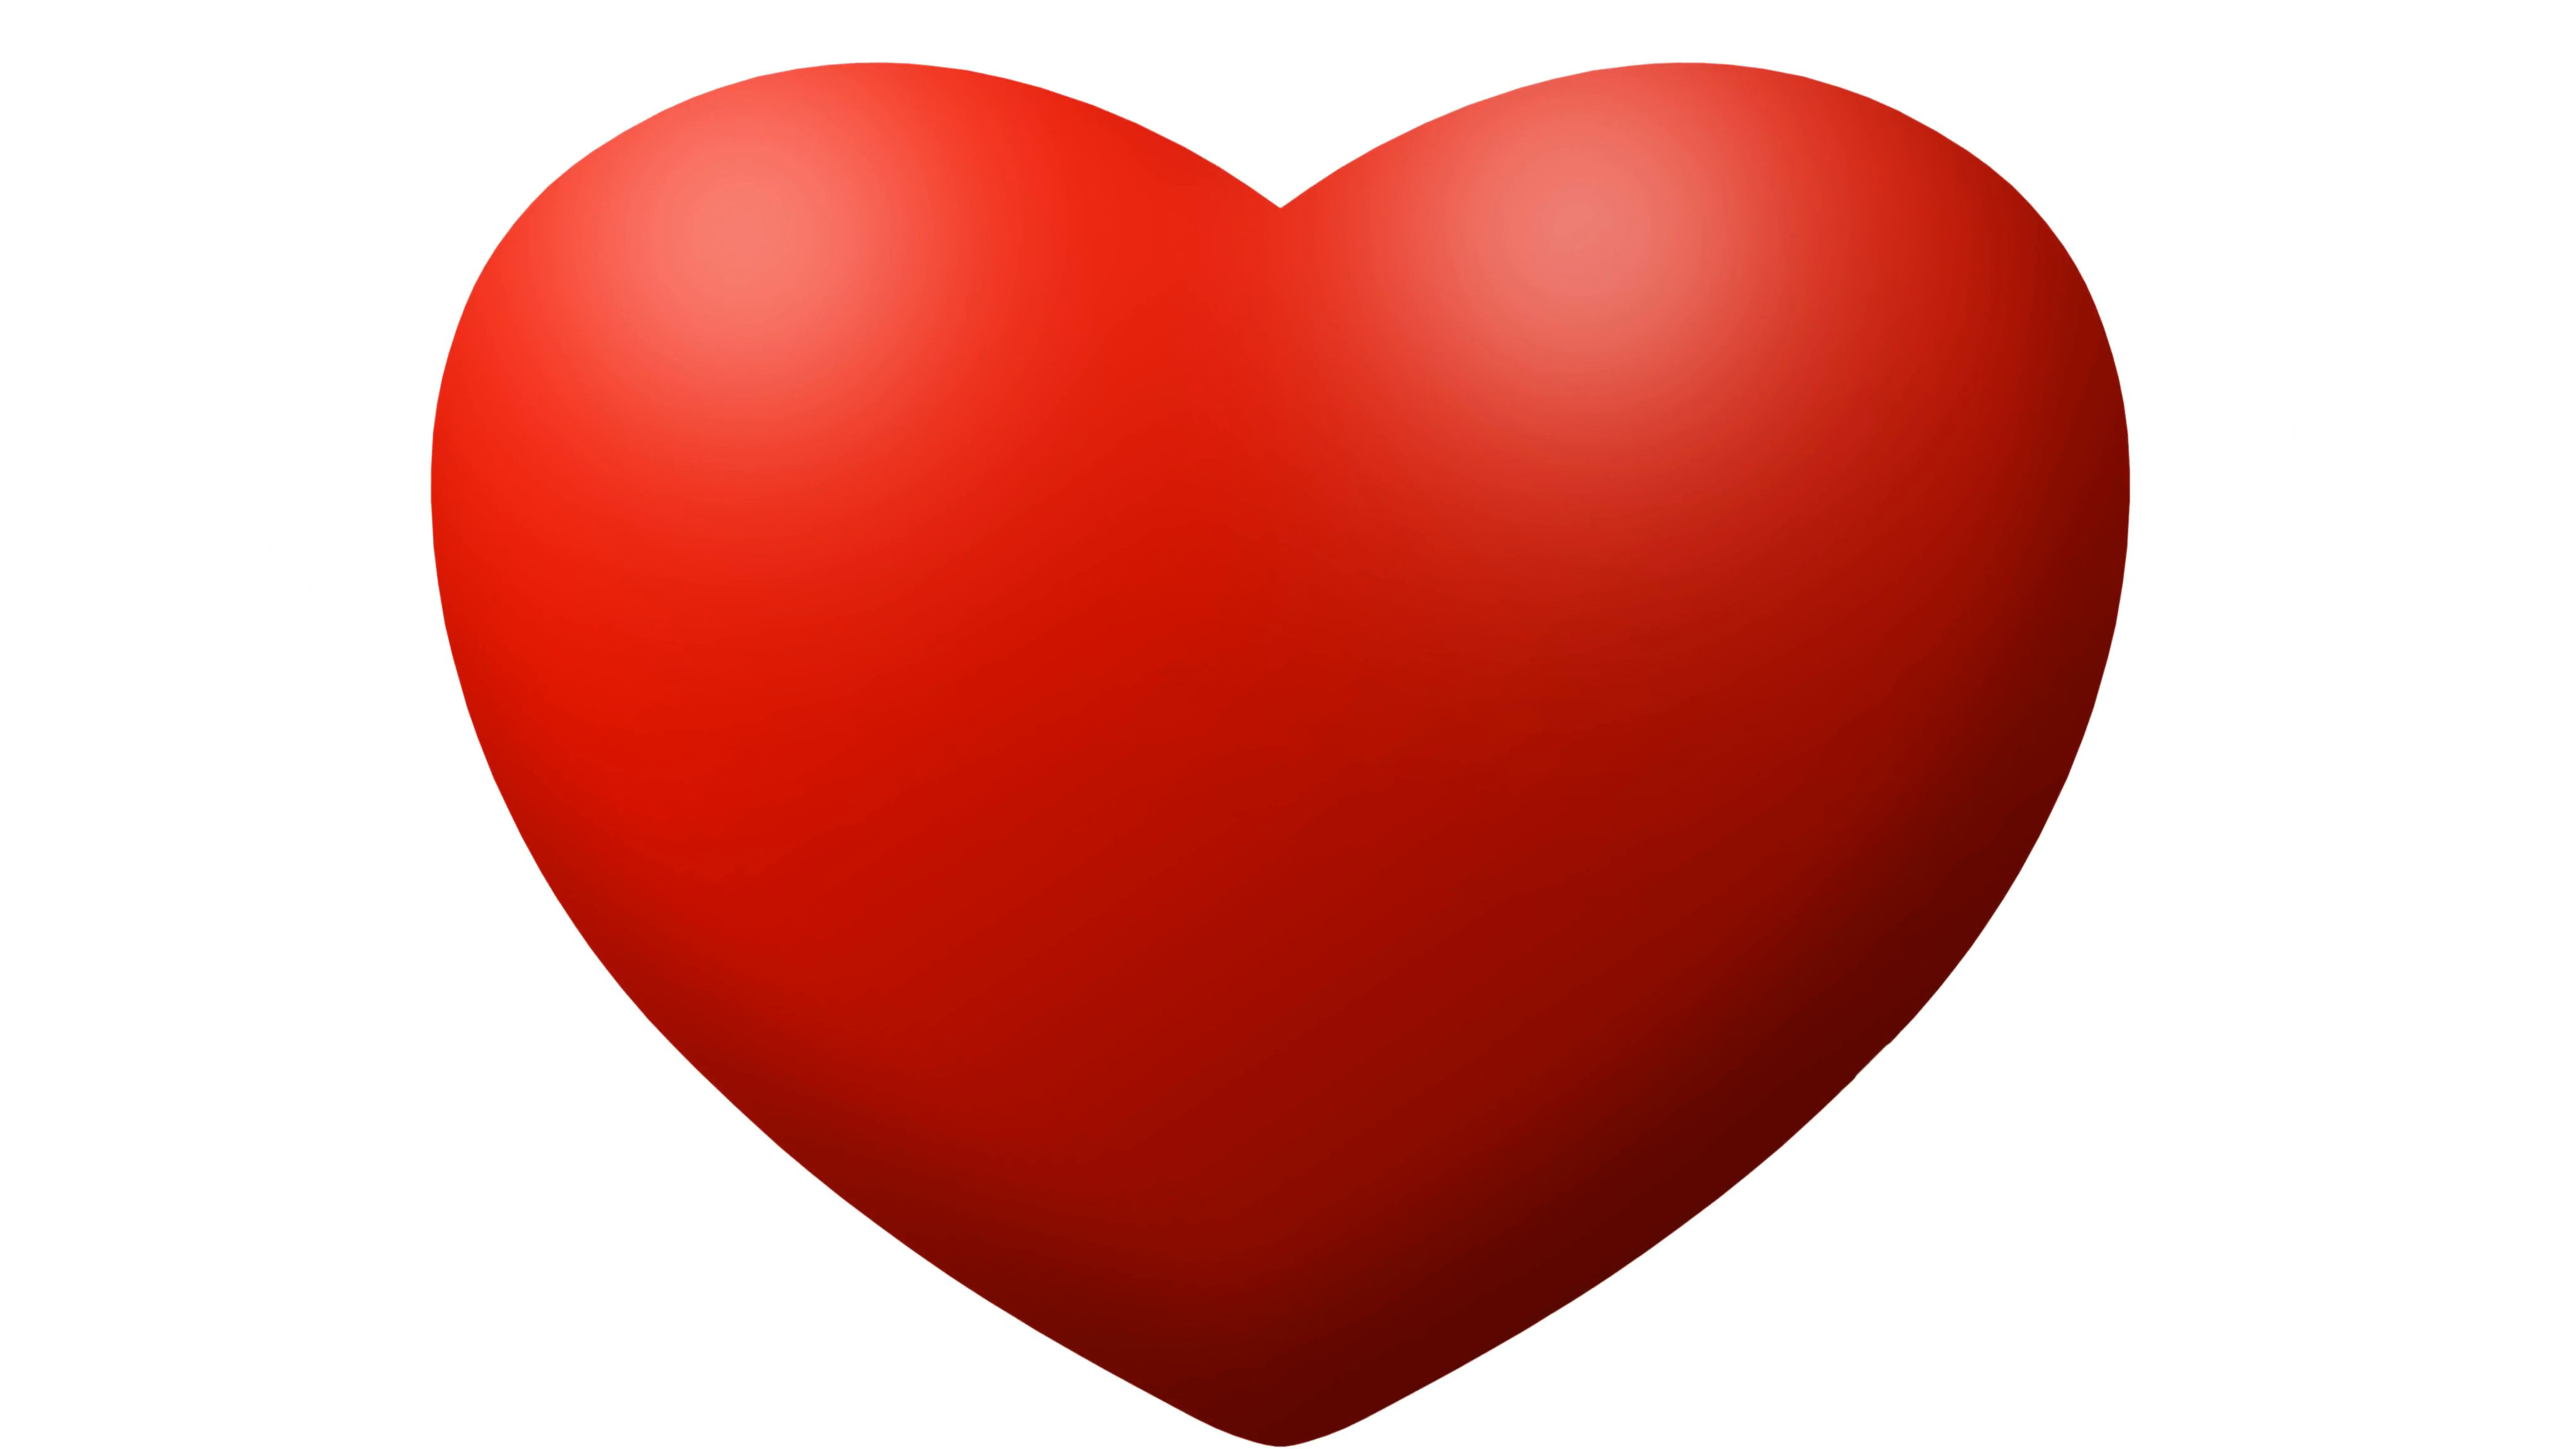 Red Heart with Love Luxury Red Love Heart Background Wallpapersafari Of Red Heart with Love Fresh Love Heart Impremedia